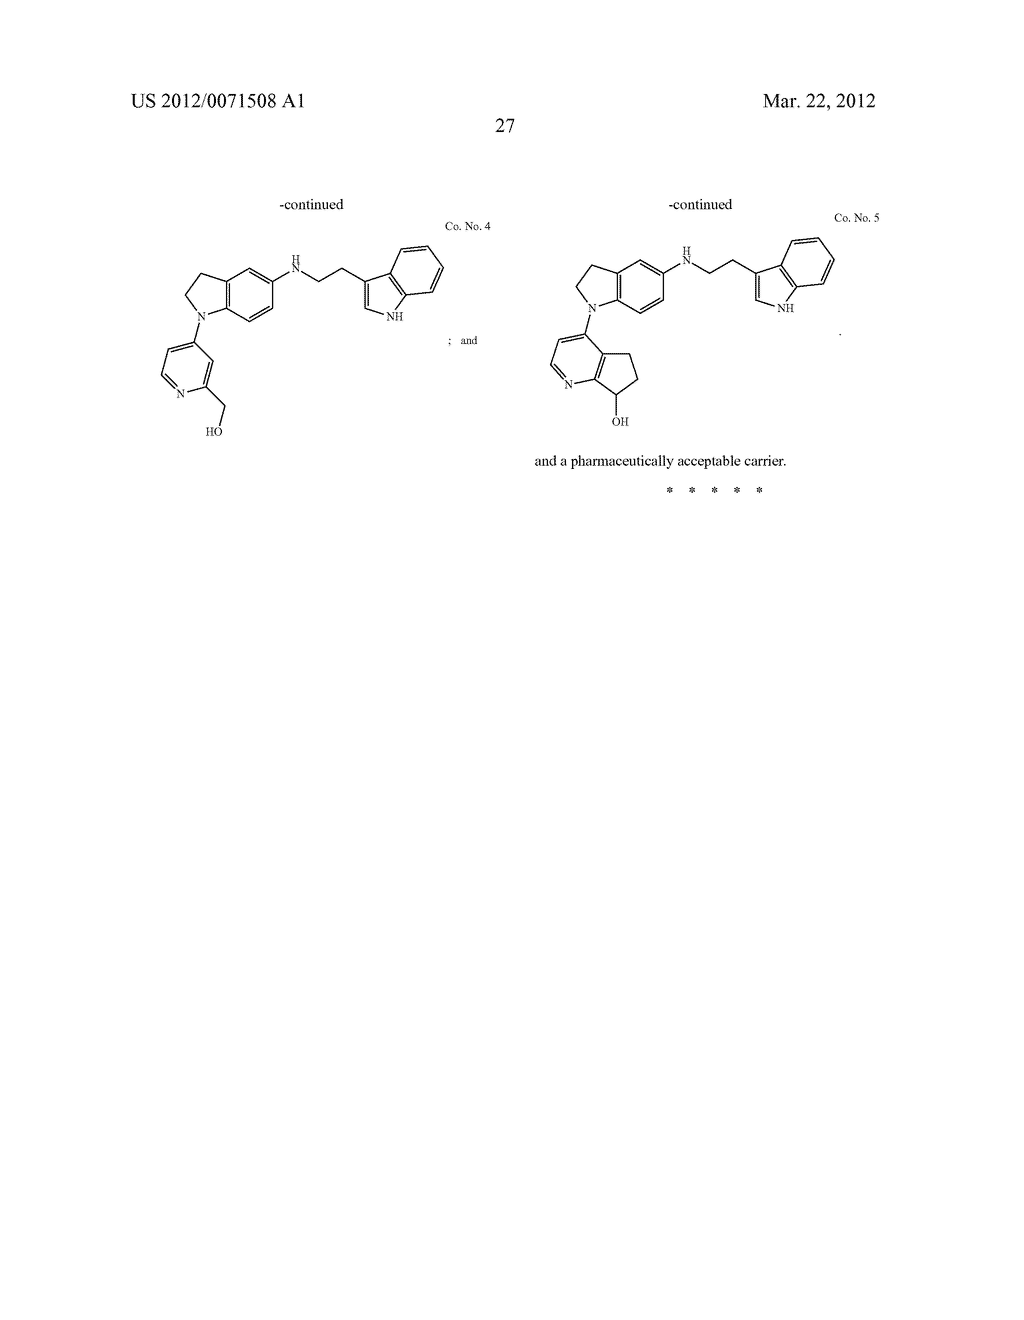 CYCLIC-ALKYLAMINE DERIVATIVES AS INHIBITORS OF THE INTERACTION BETWEEN     MDM2 AND P53 - diagram, schematic, and image 28